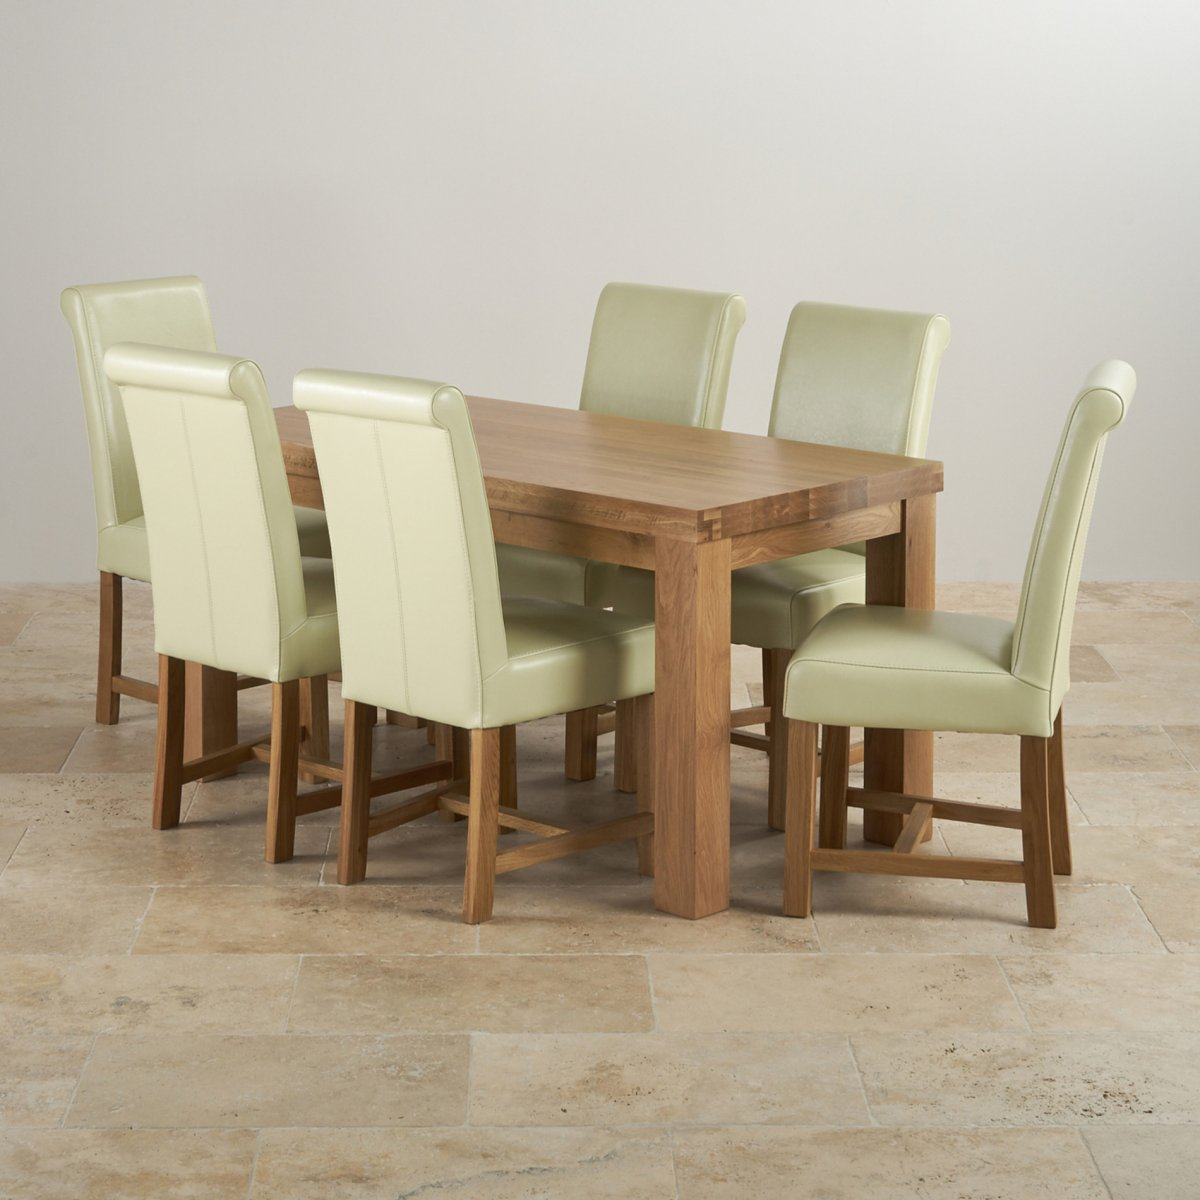 Contemporary Dining Set In Oak: Table + 6 Cream Leather Chairs